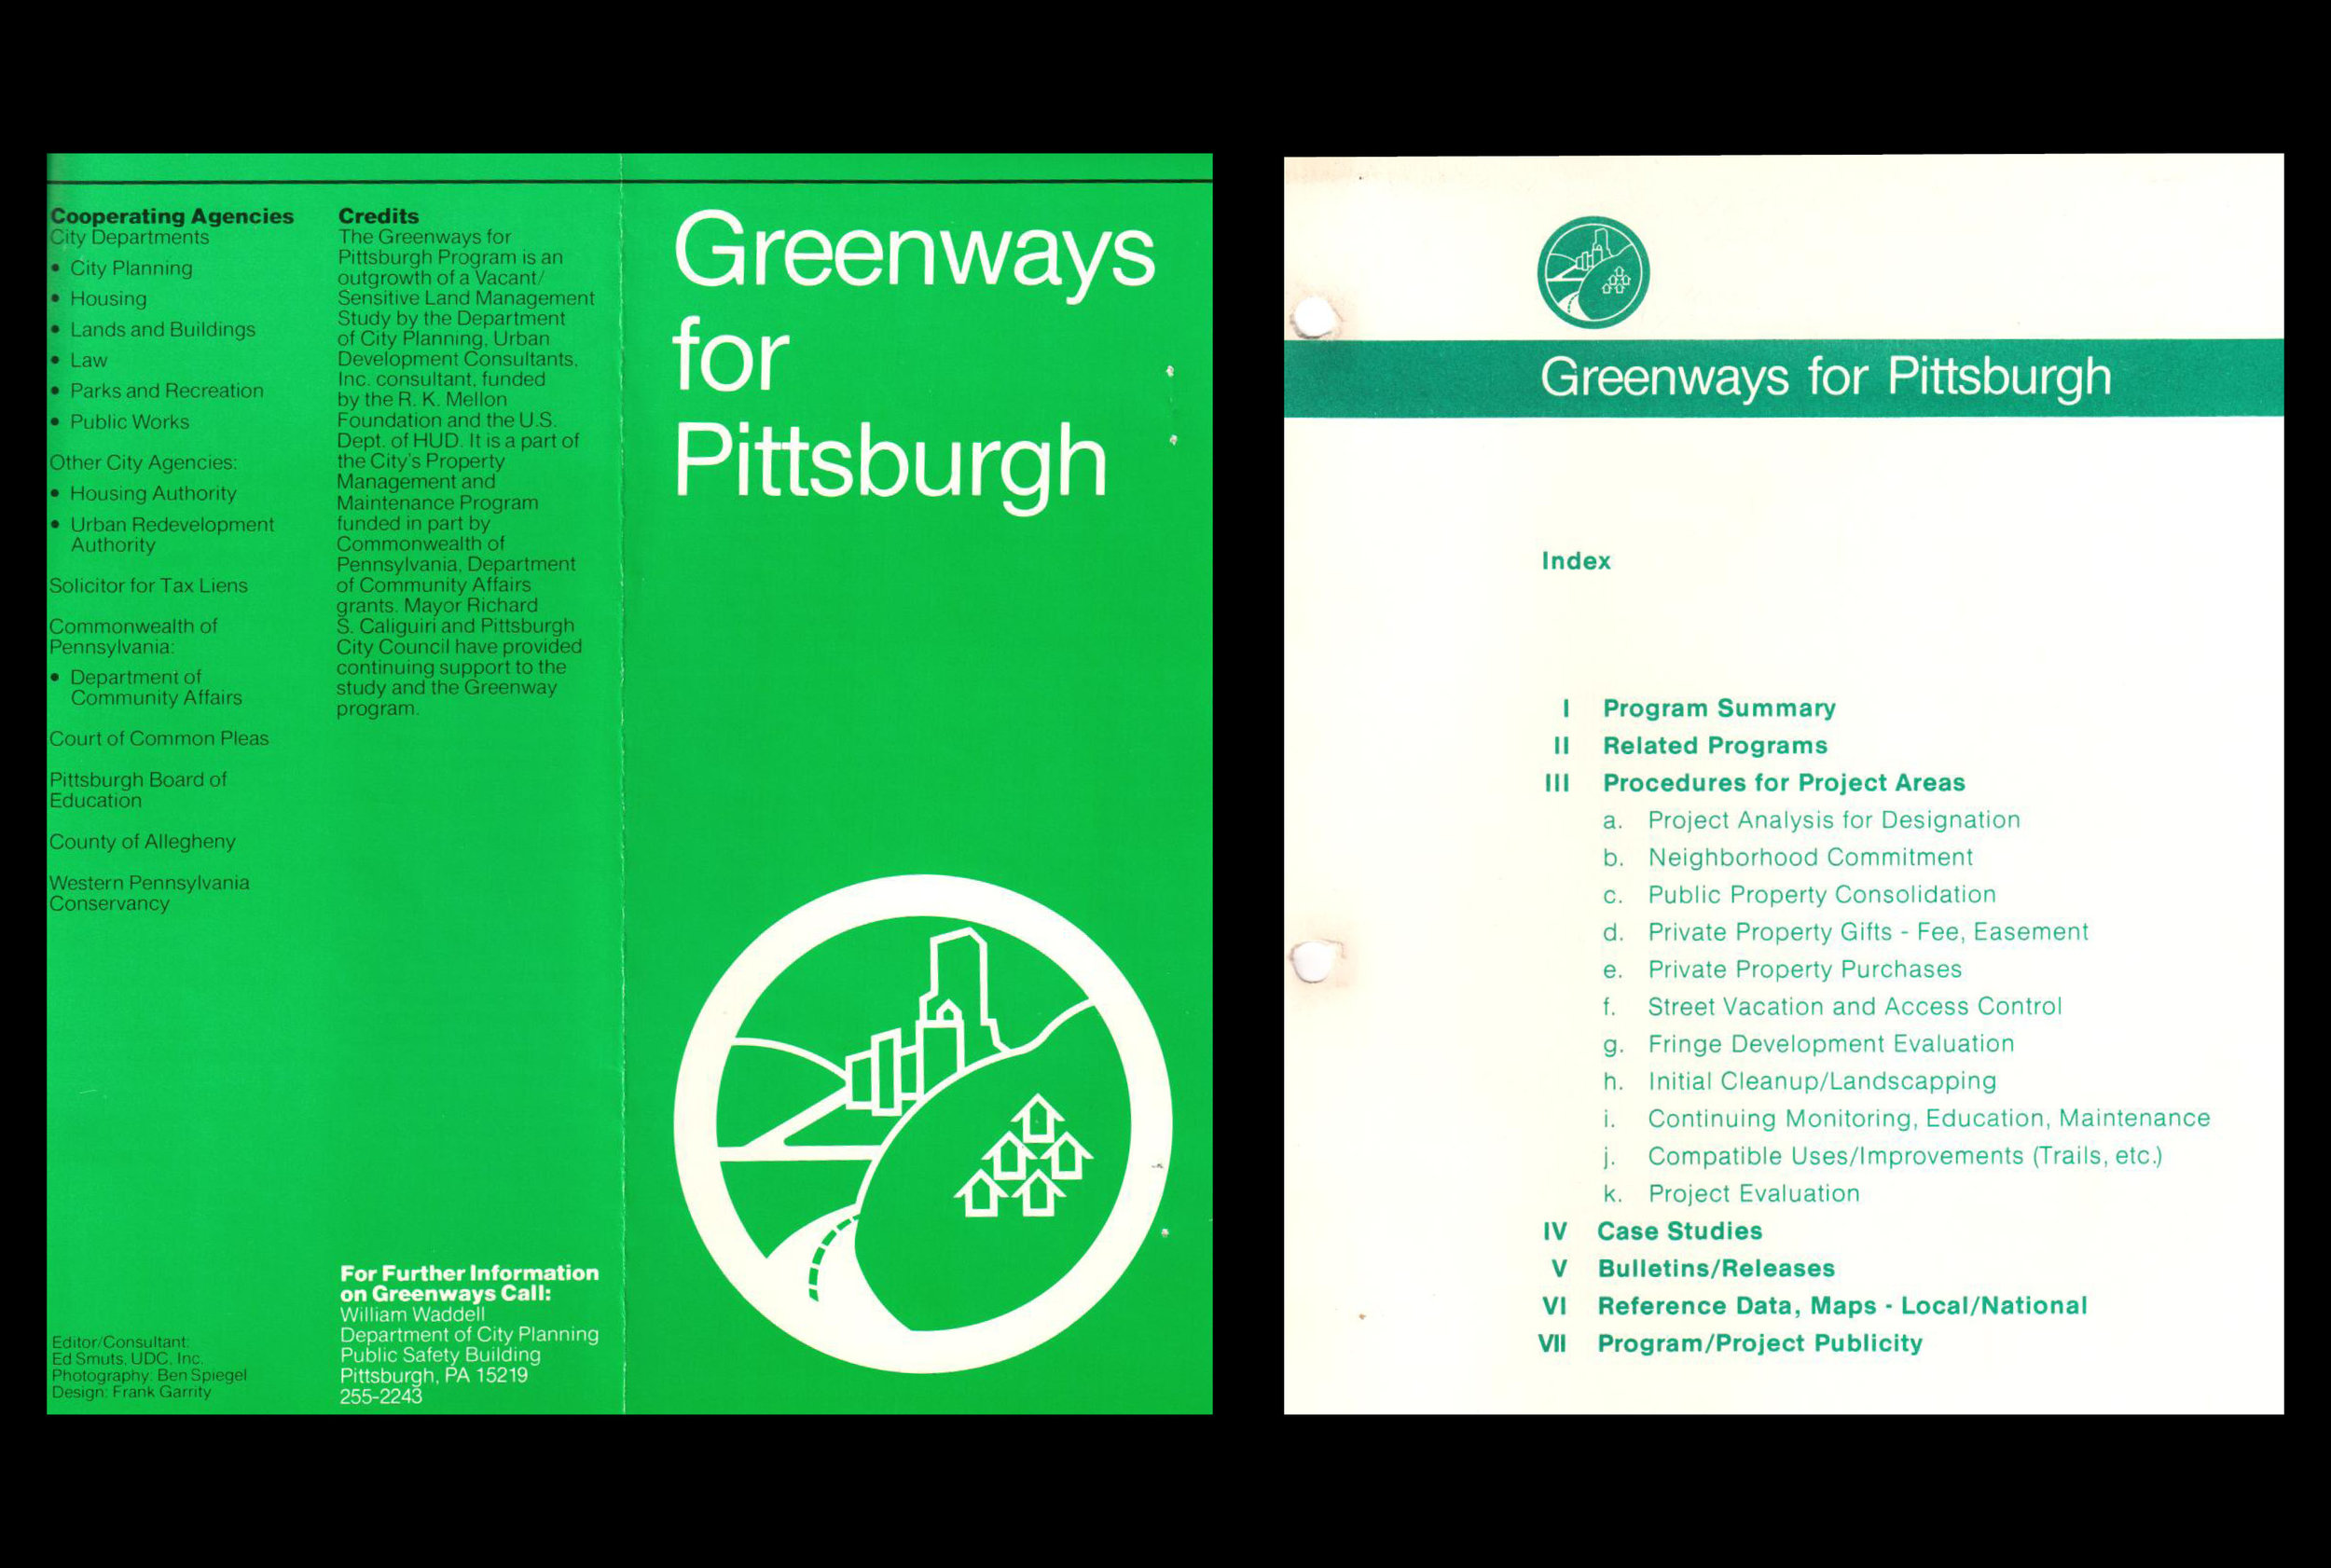 FIRST GREENWAYS FOR PITTSBURGH GUIDE, 1980